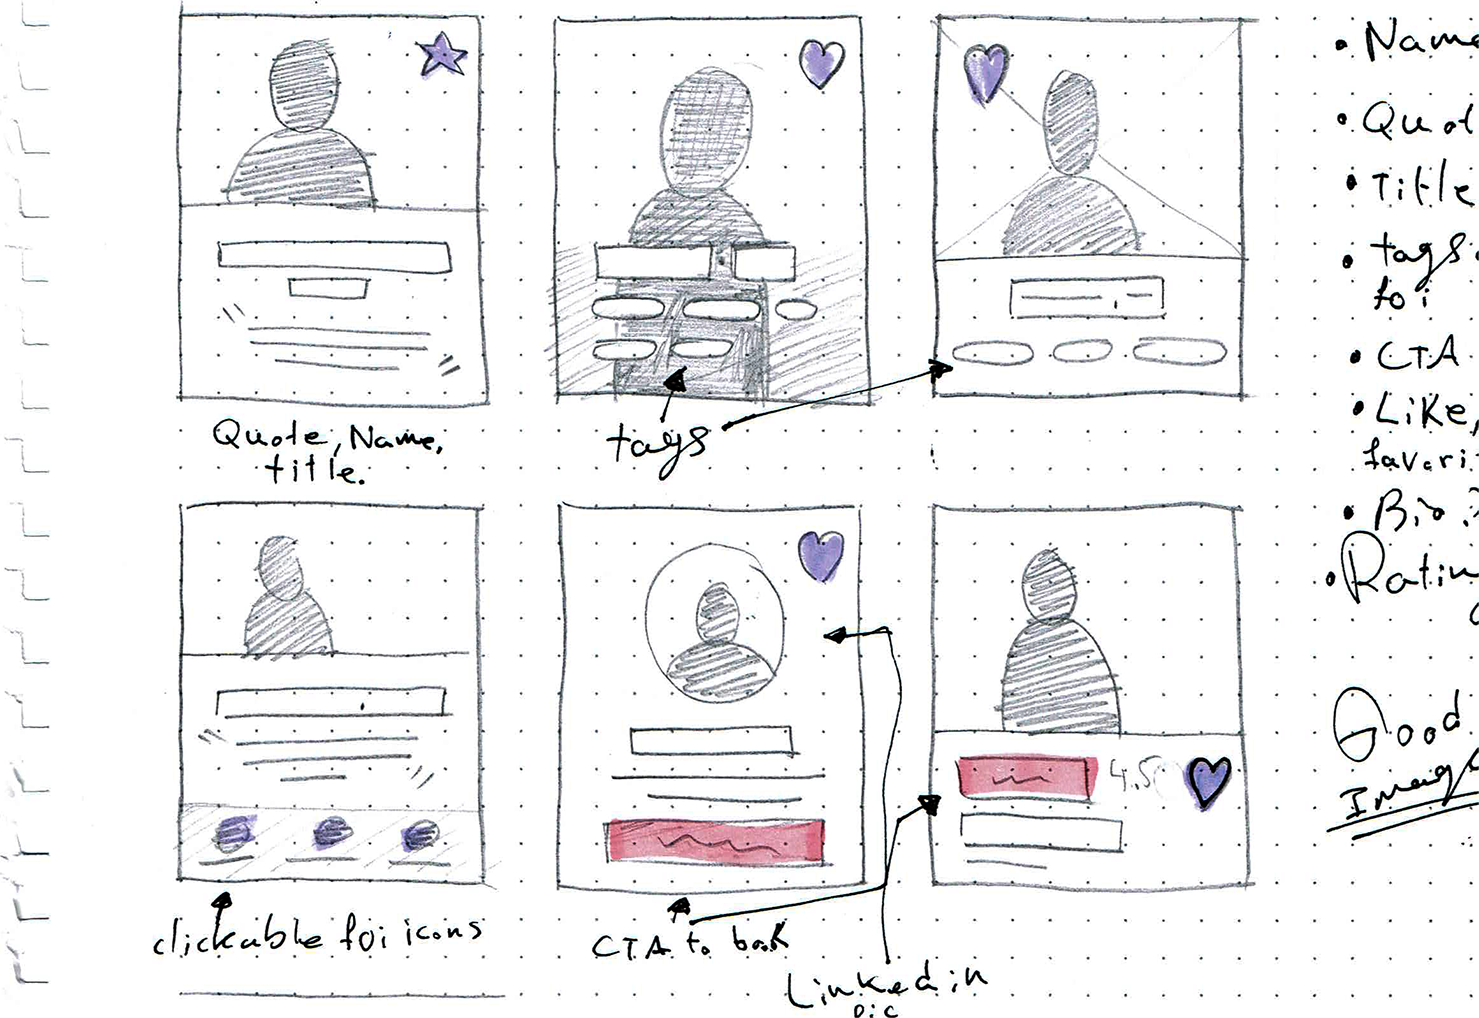 Watoobi: Mentor Card sketches